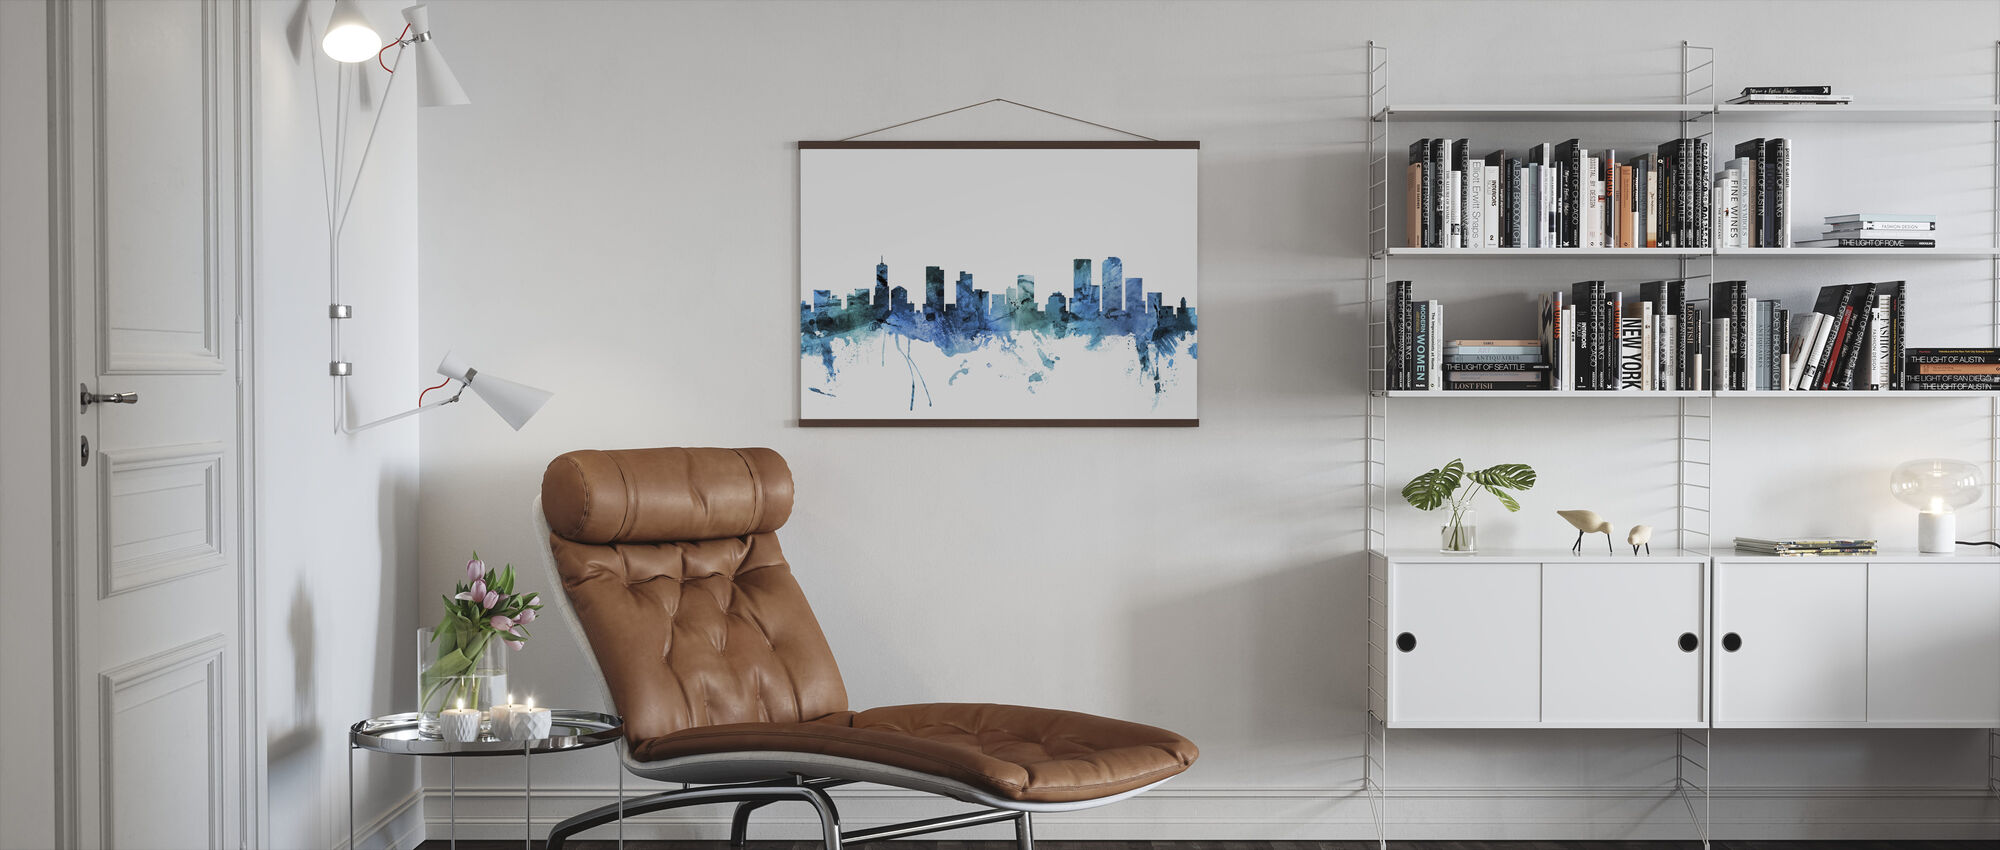 Denver Colorado Skyline - Poster - Living Room